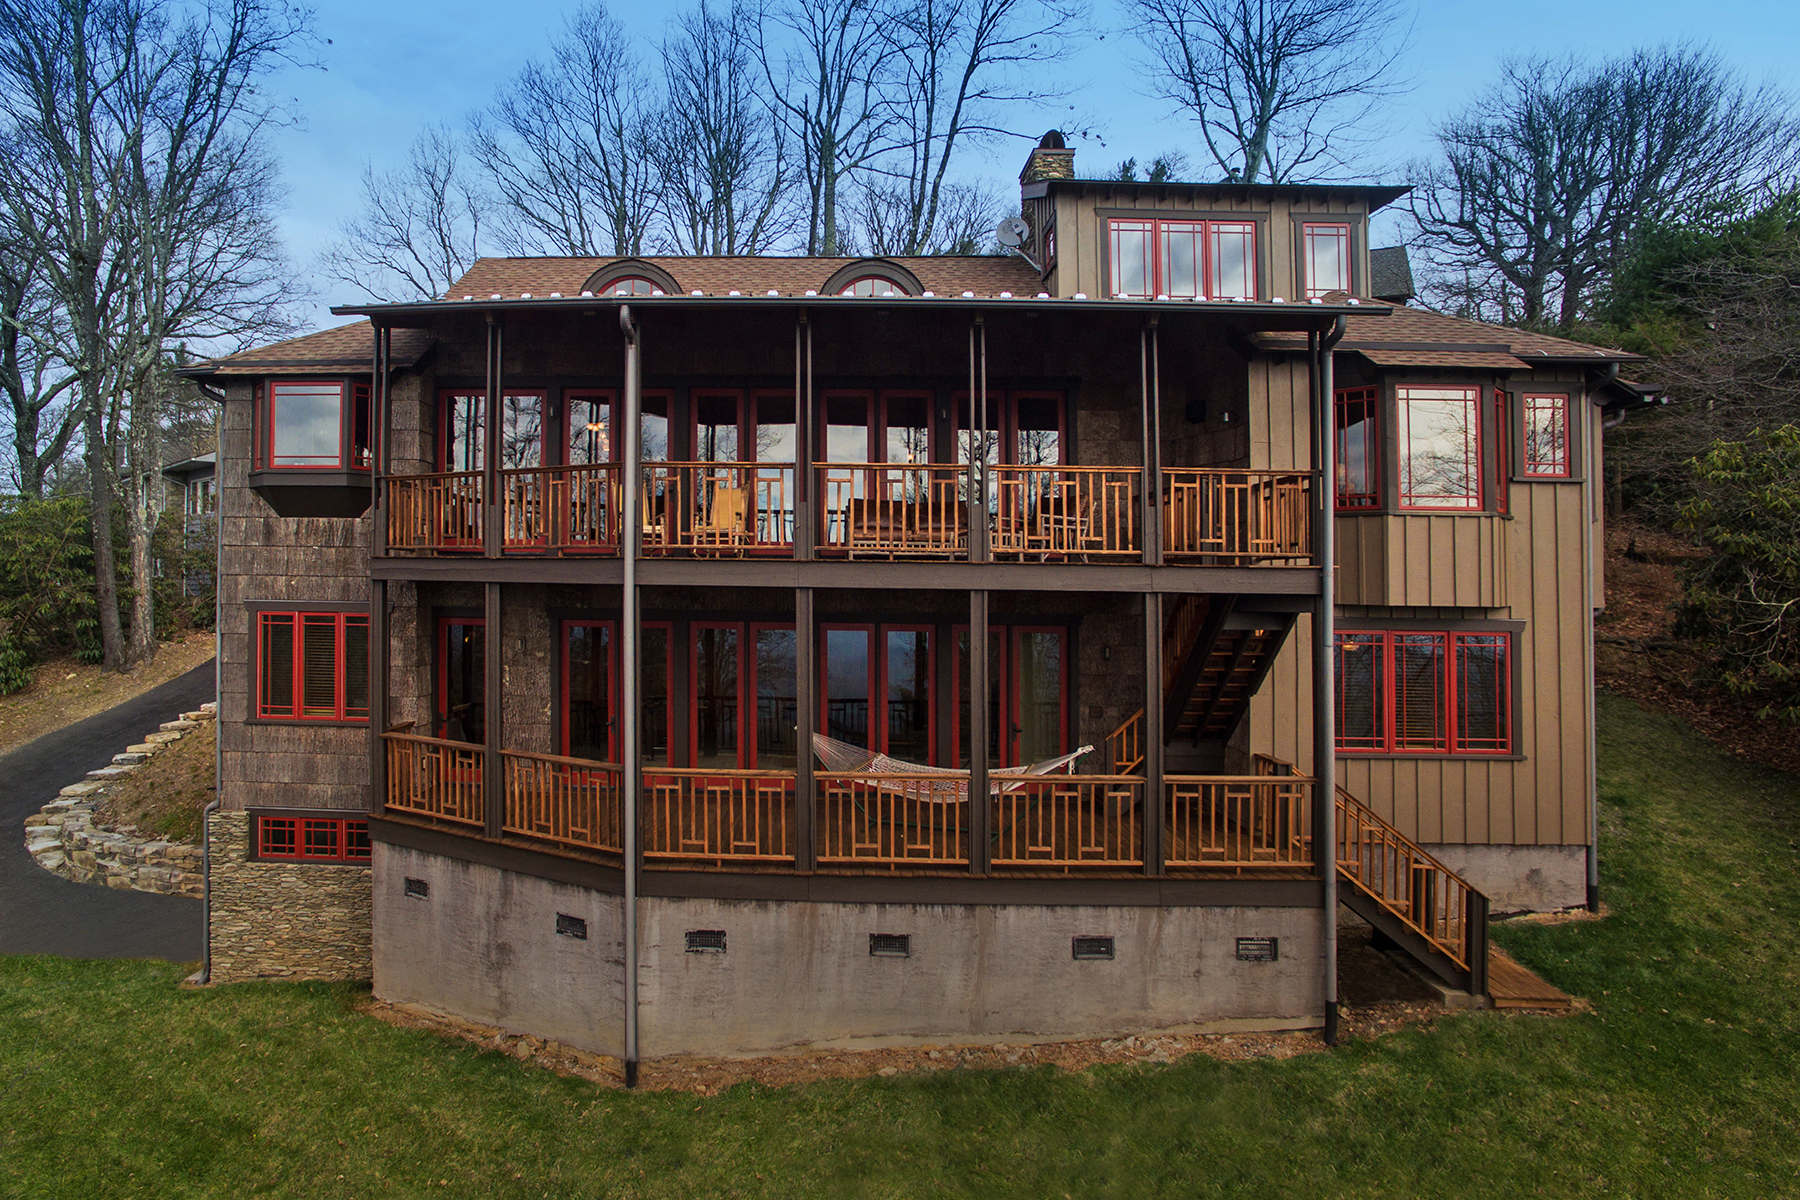 Additional photo for property listing at BLOWING ROCK - LAUREL PARK 157  Dogwood Ln,  Blowing Rock, North Carolina 28605 United States